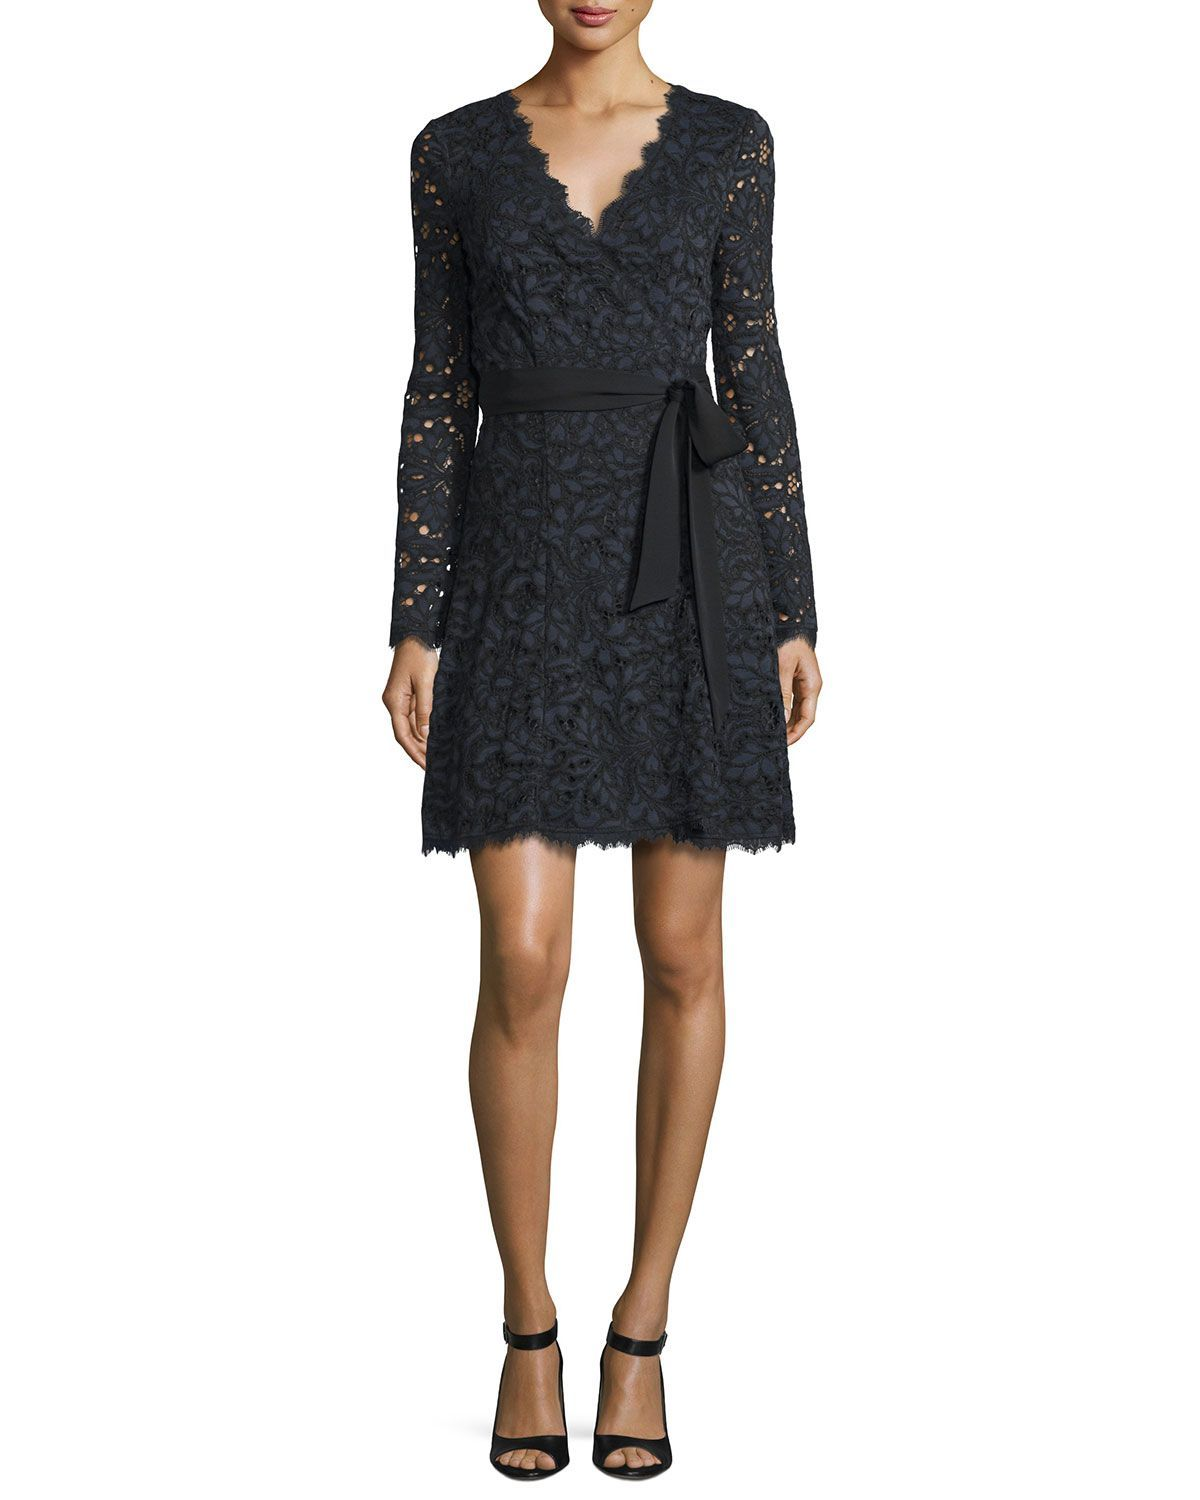 floral lace overlay dress - Black Diane Von F bwsF4va7Px